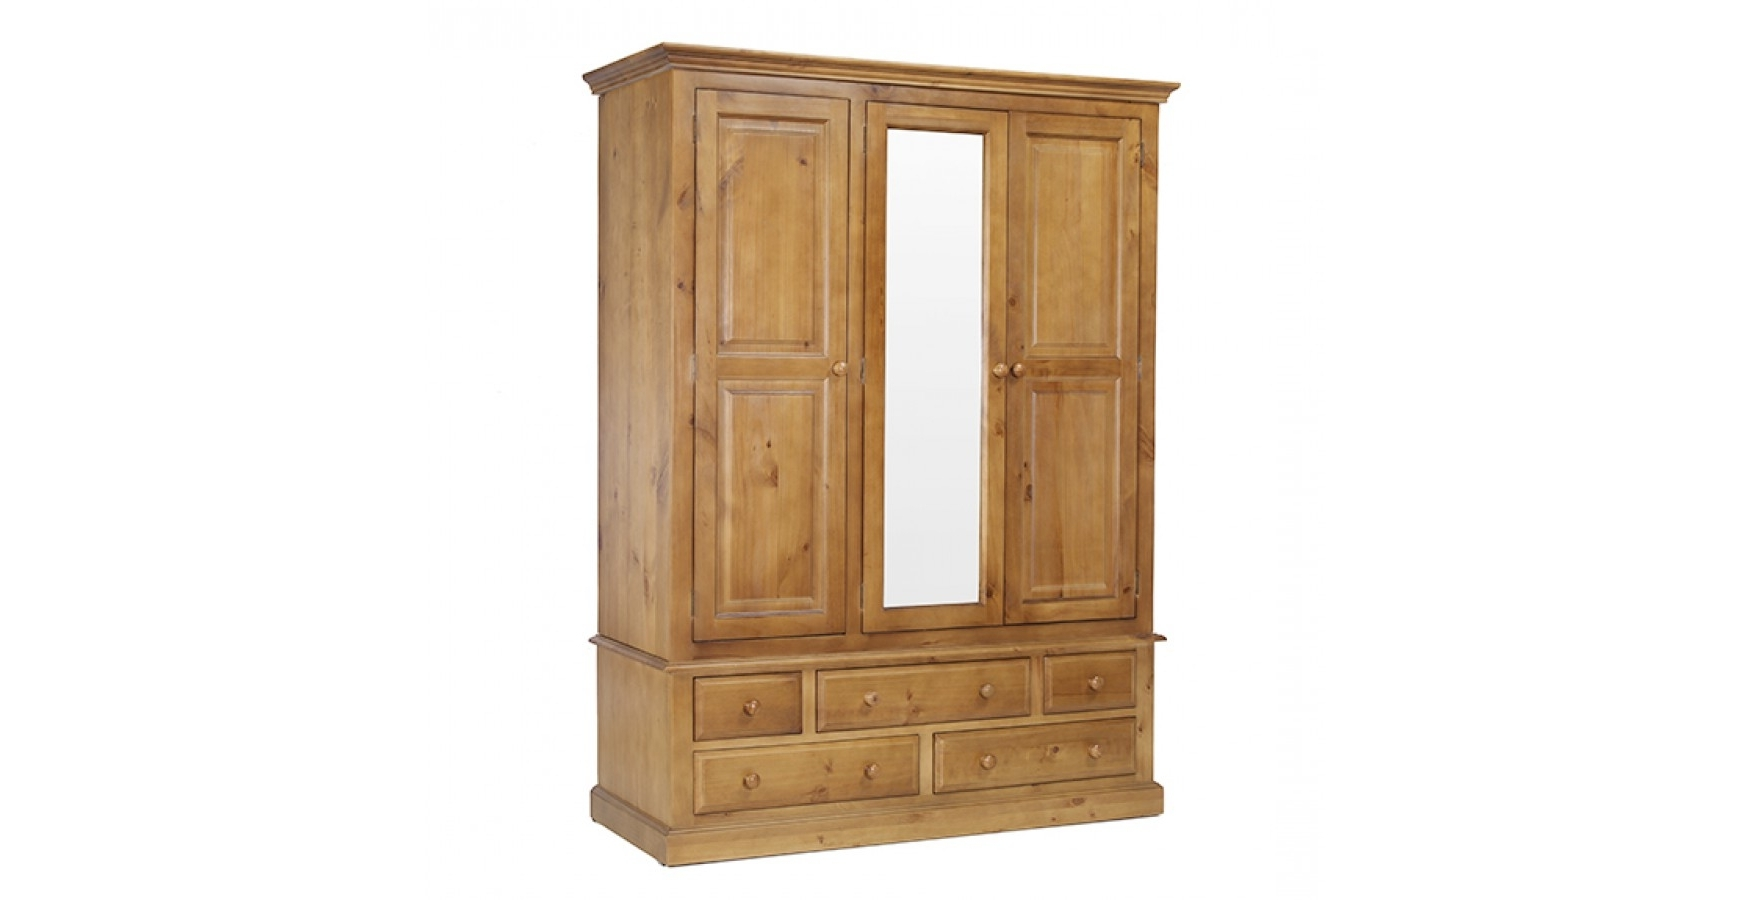 Well Known Pine Wardrobes With Drawers With Regard To Country Pine Triple Wardrobe With Drawers – Lifestyle Furniture Uk (View 15 of 15)